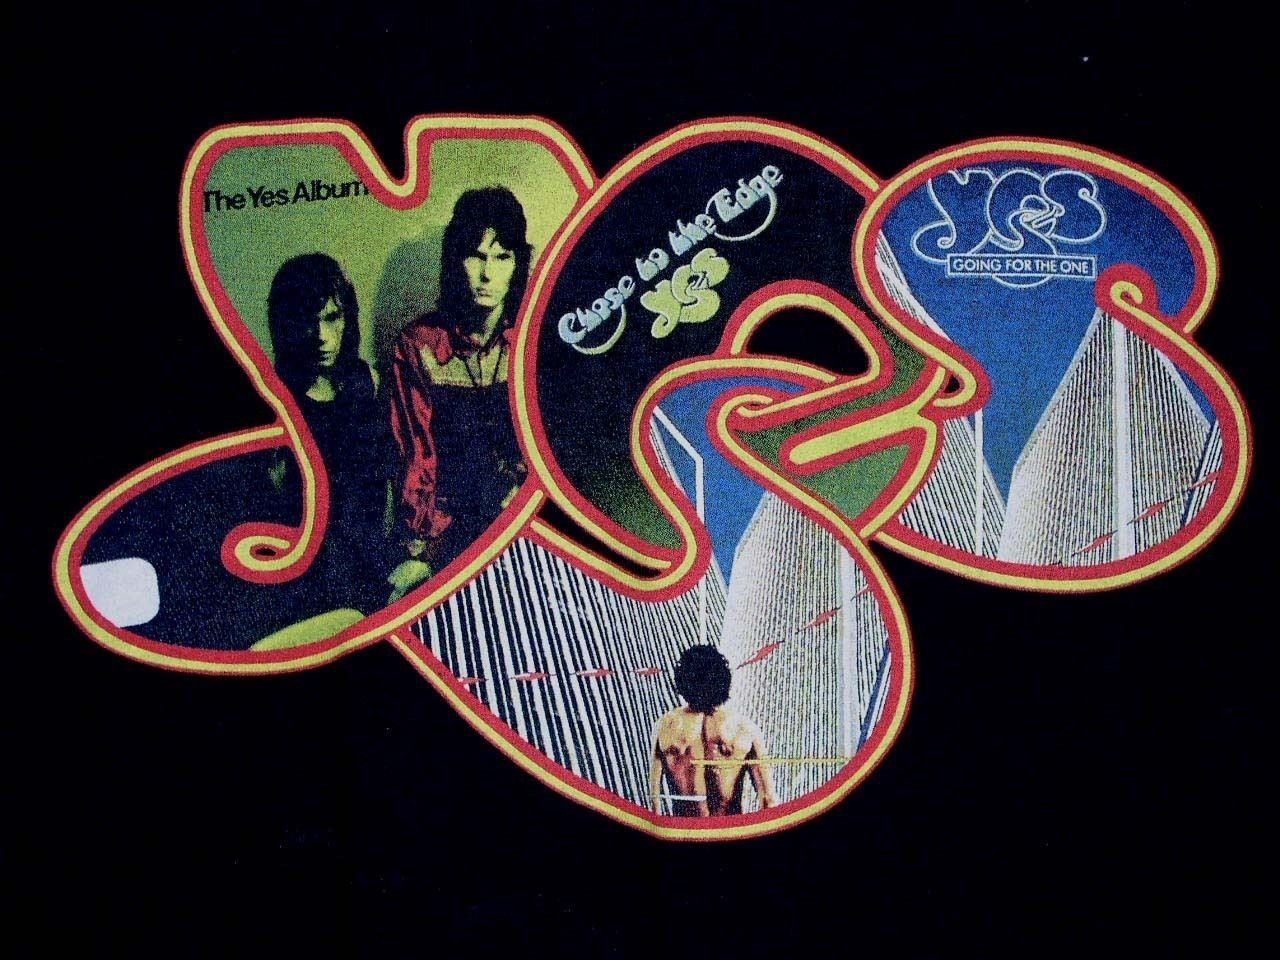 YES band t shirt - Google Search | YES | Pinterest